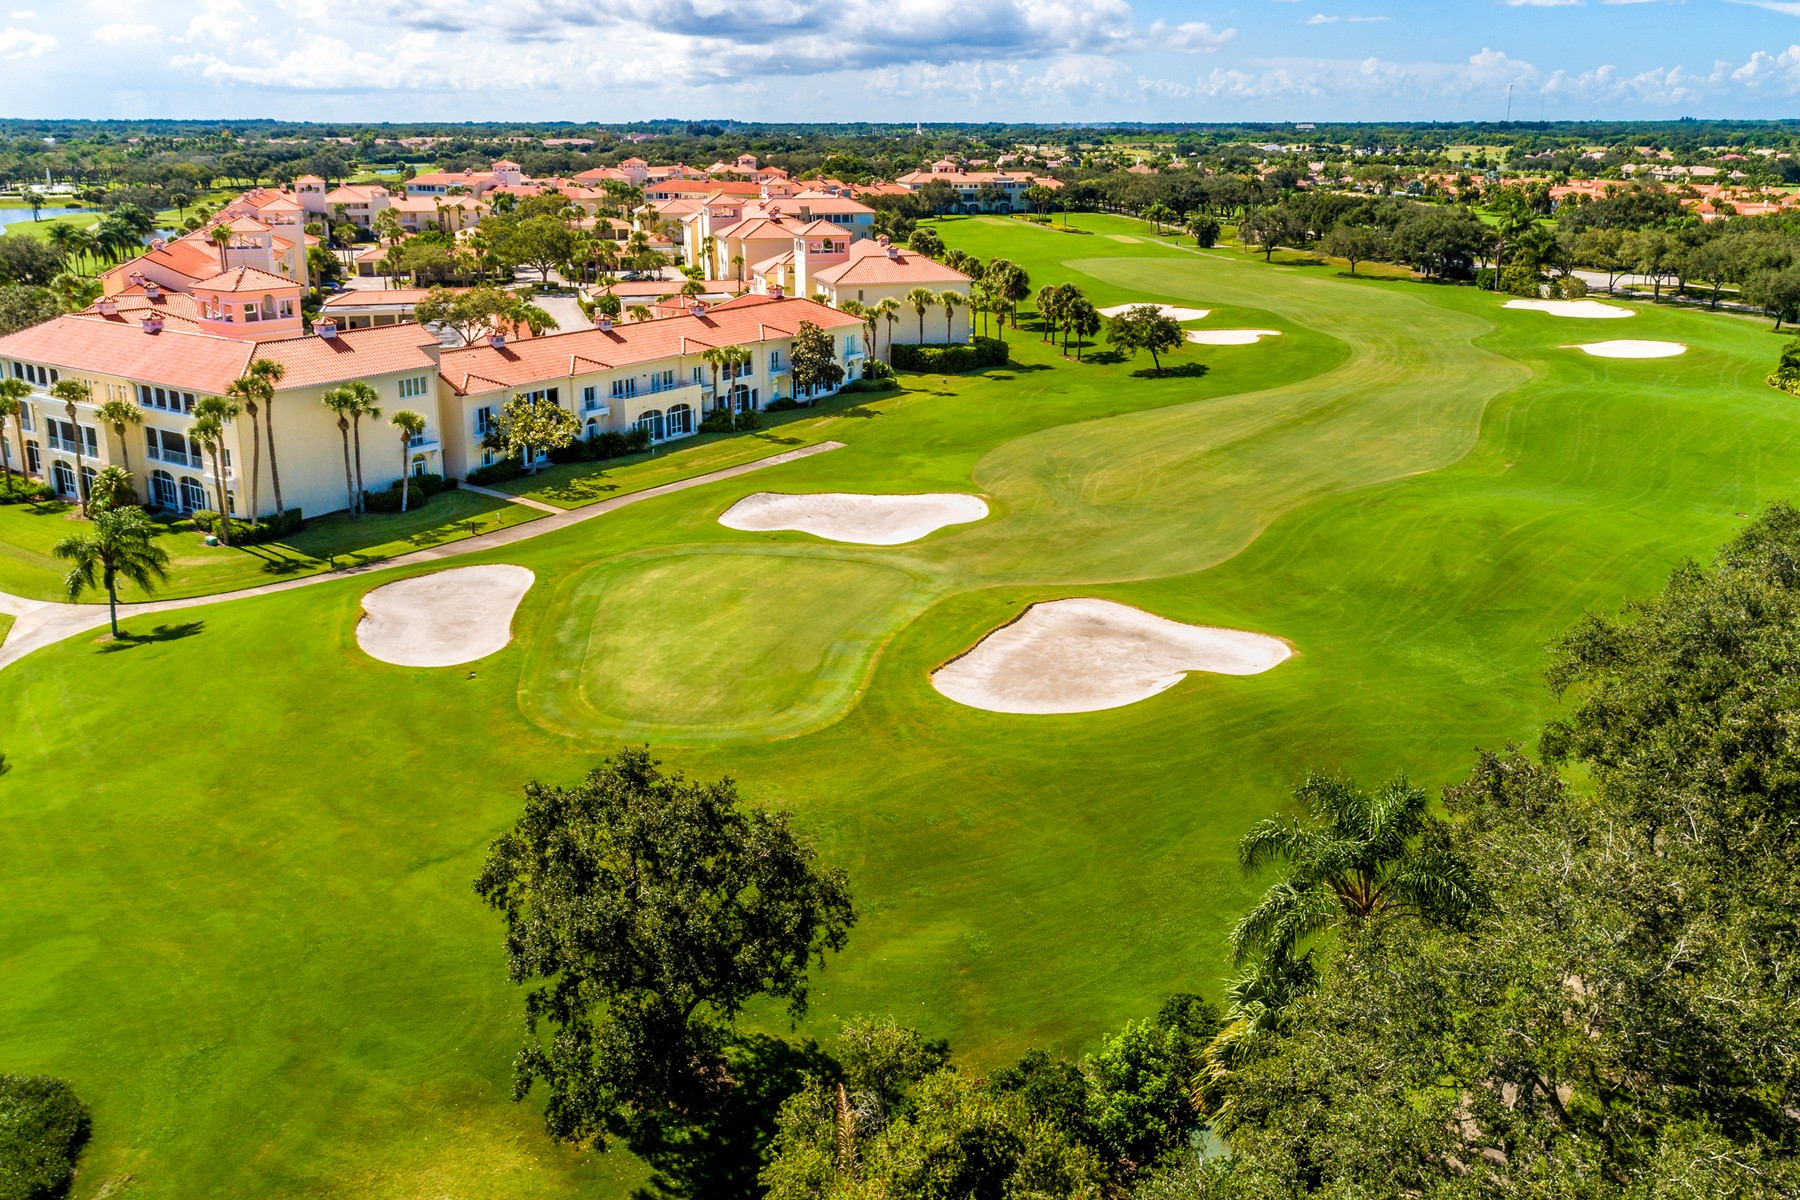 Additional photo for property listing at Luxury New Construction in Grand Harbor 2352 Grand Harbor Reserve Square Vero Beach, Florida 32967 United States